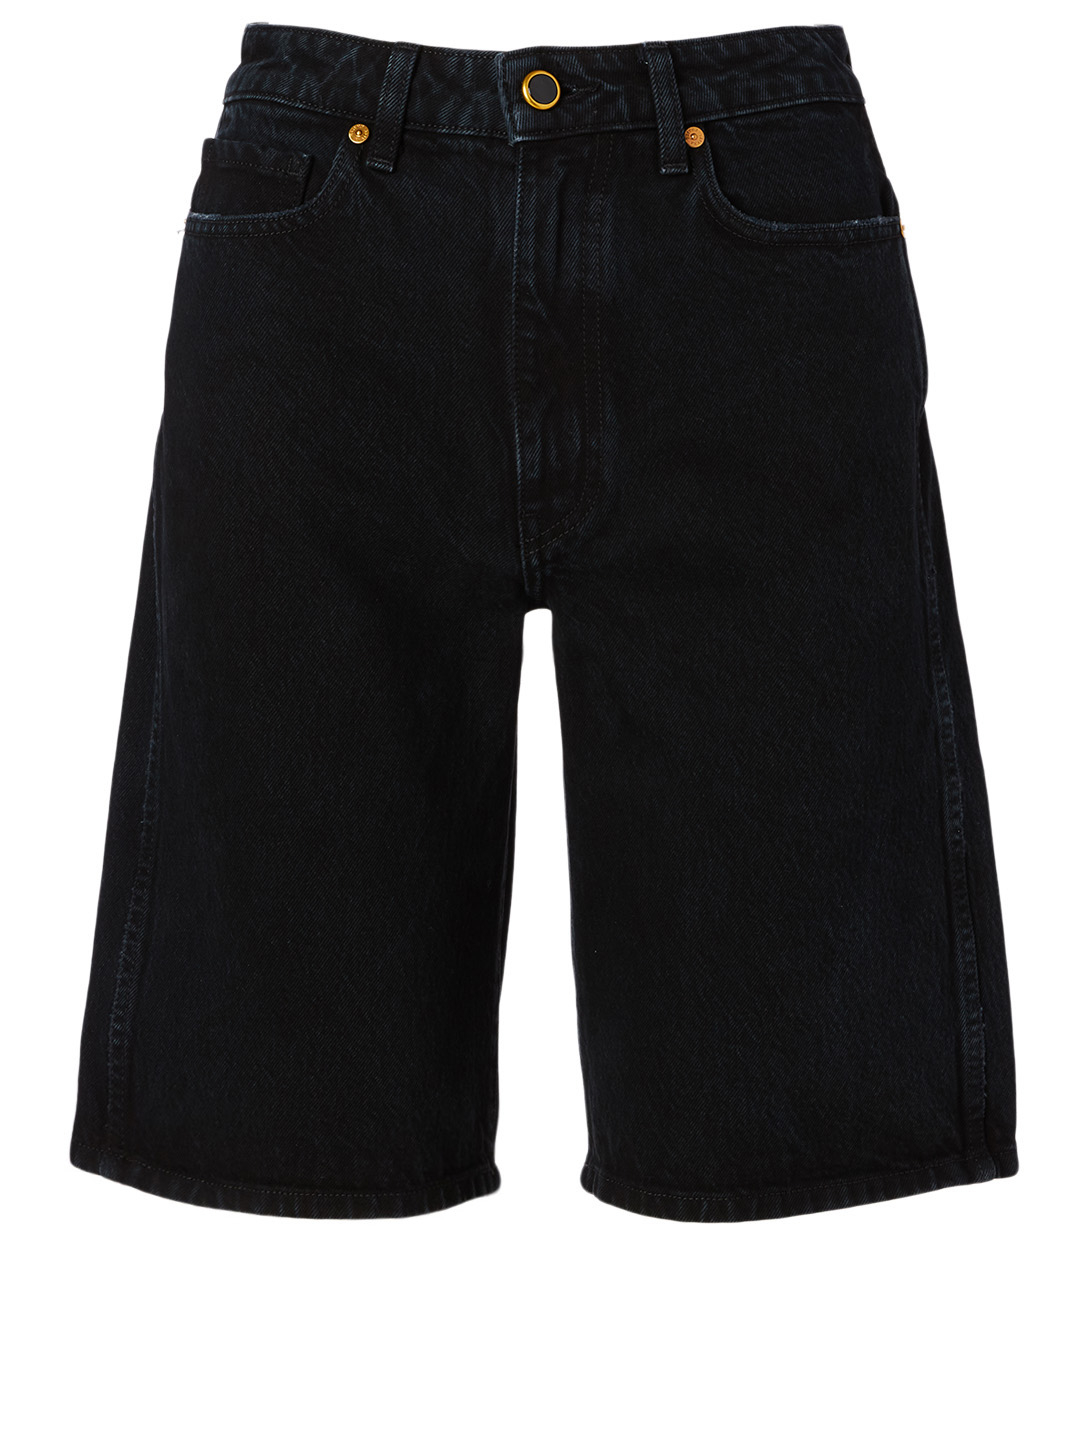 KHAITE Mitch Jean Shorts Women's Black